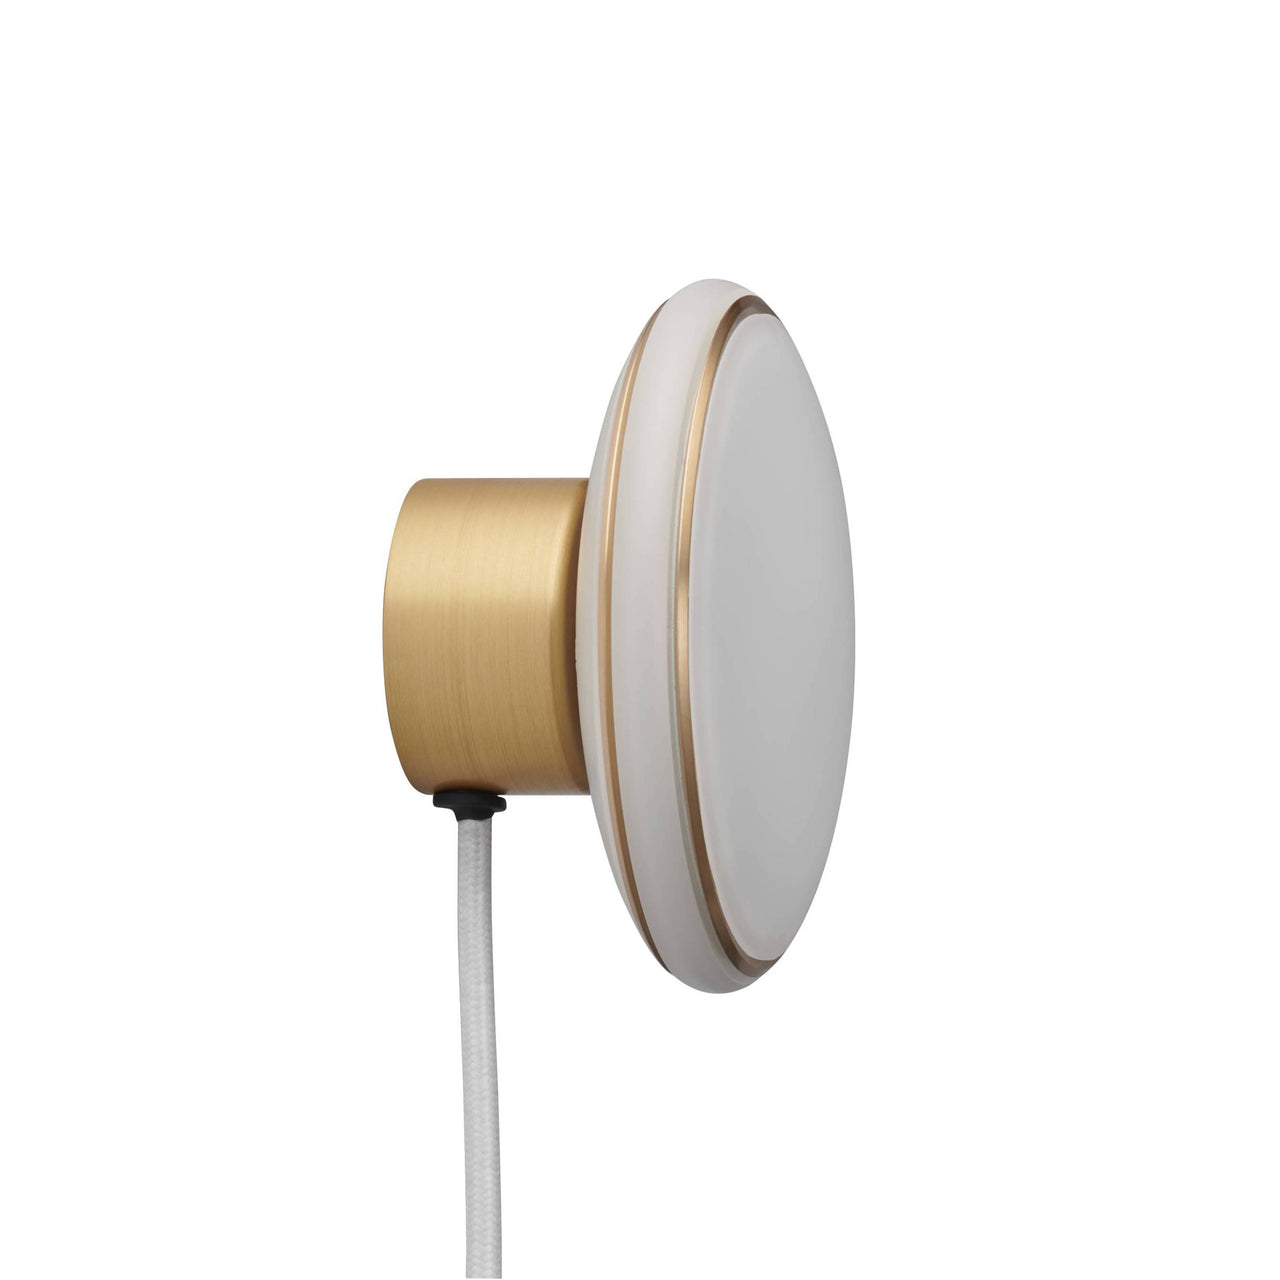 ØS1 Wall Lamp: Brass+ Brass + White + Without Node